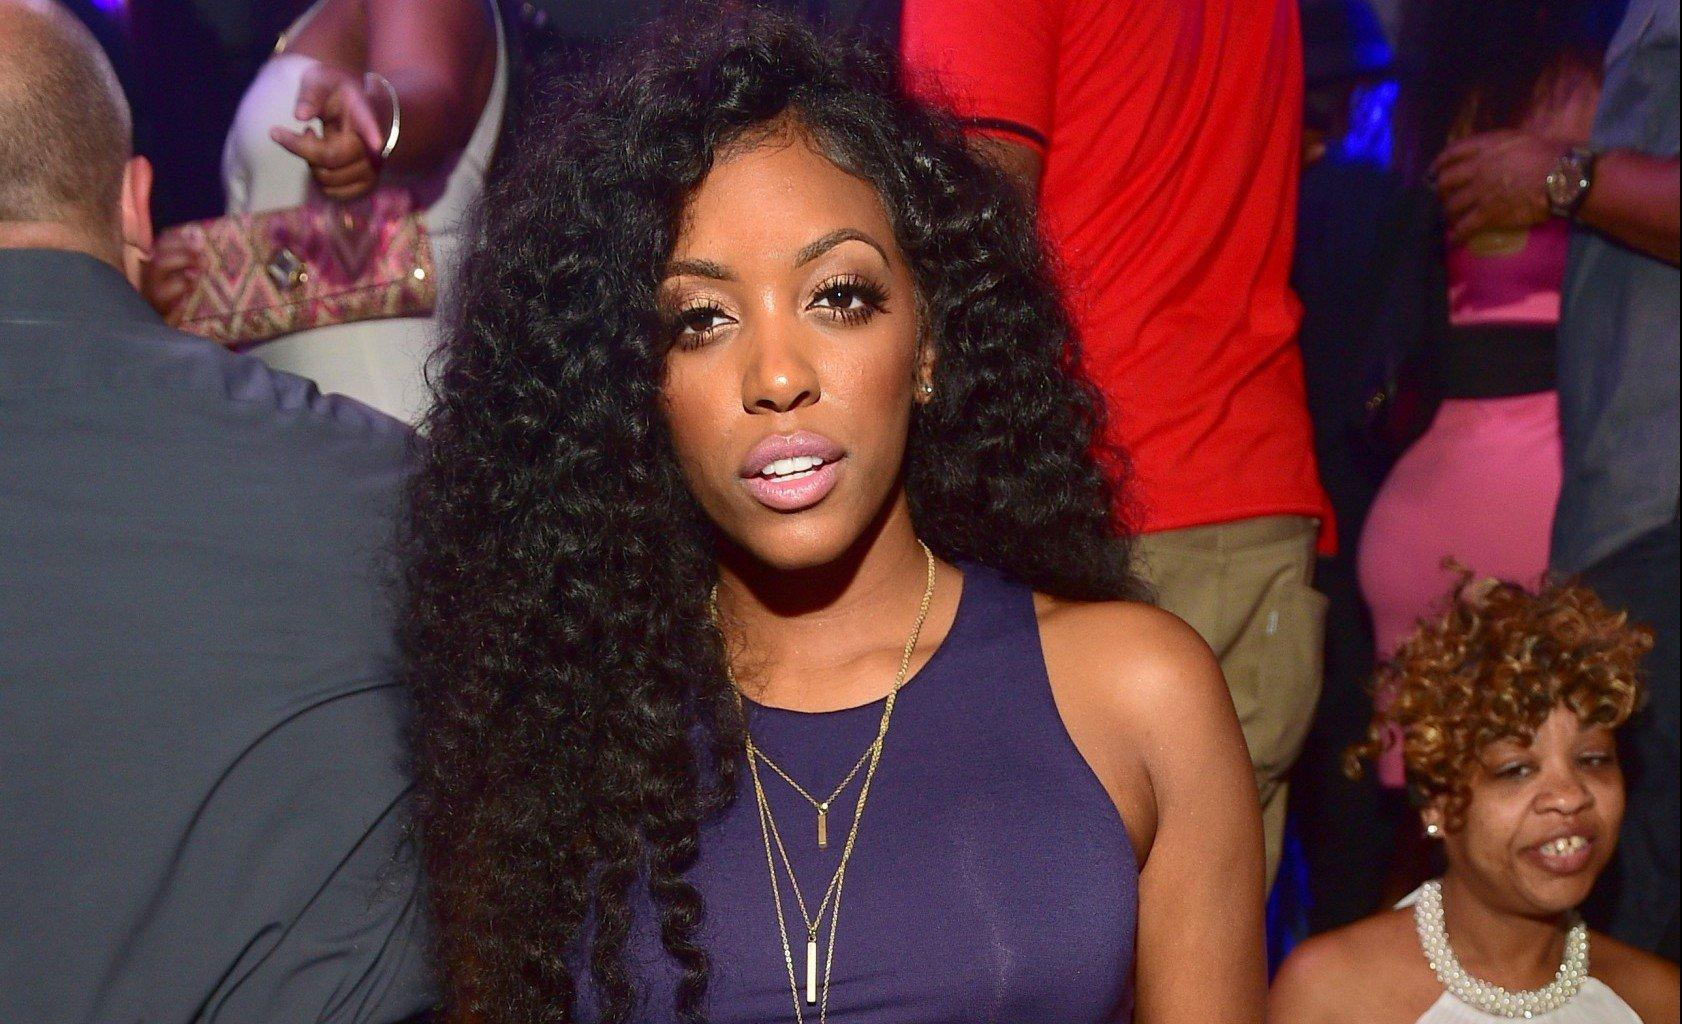 Porsha Williams Continues To Ask For Justice For Breonna Taylor